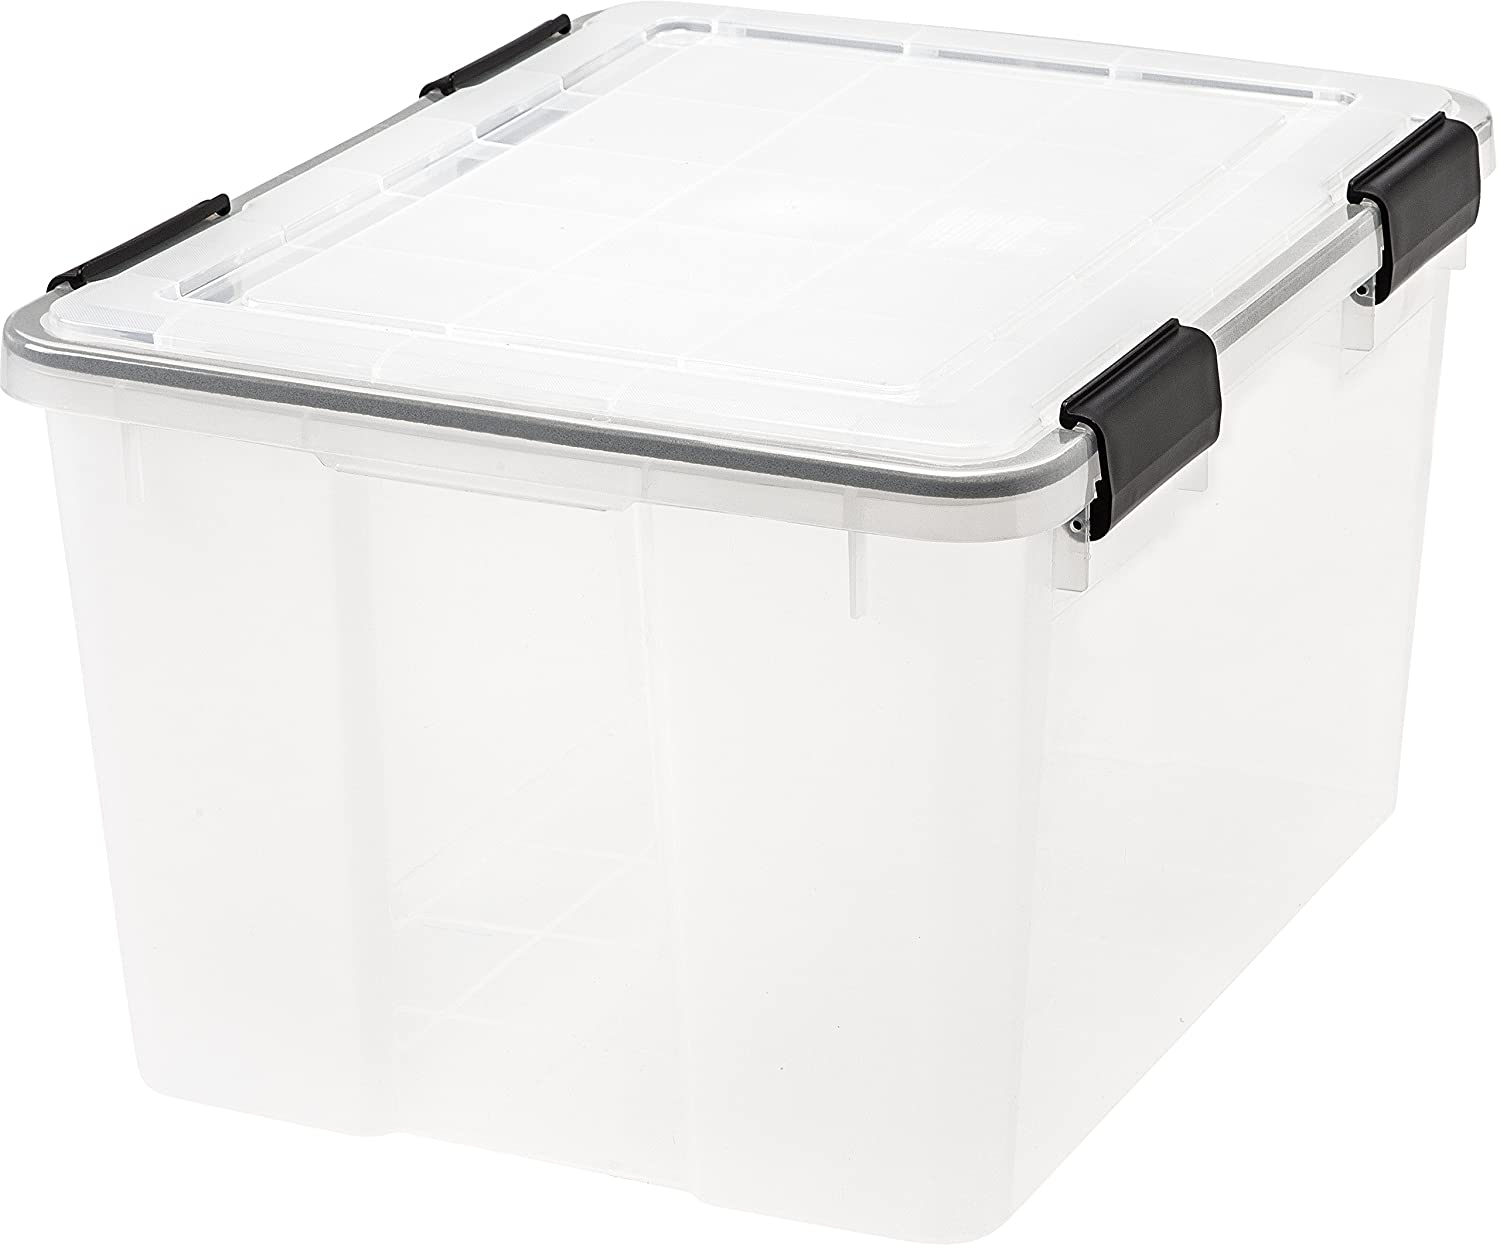 Amazoncom IRIS USA Inc IRIS 46 Quart WEATHERTIGHT Storage Box